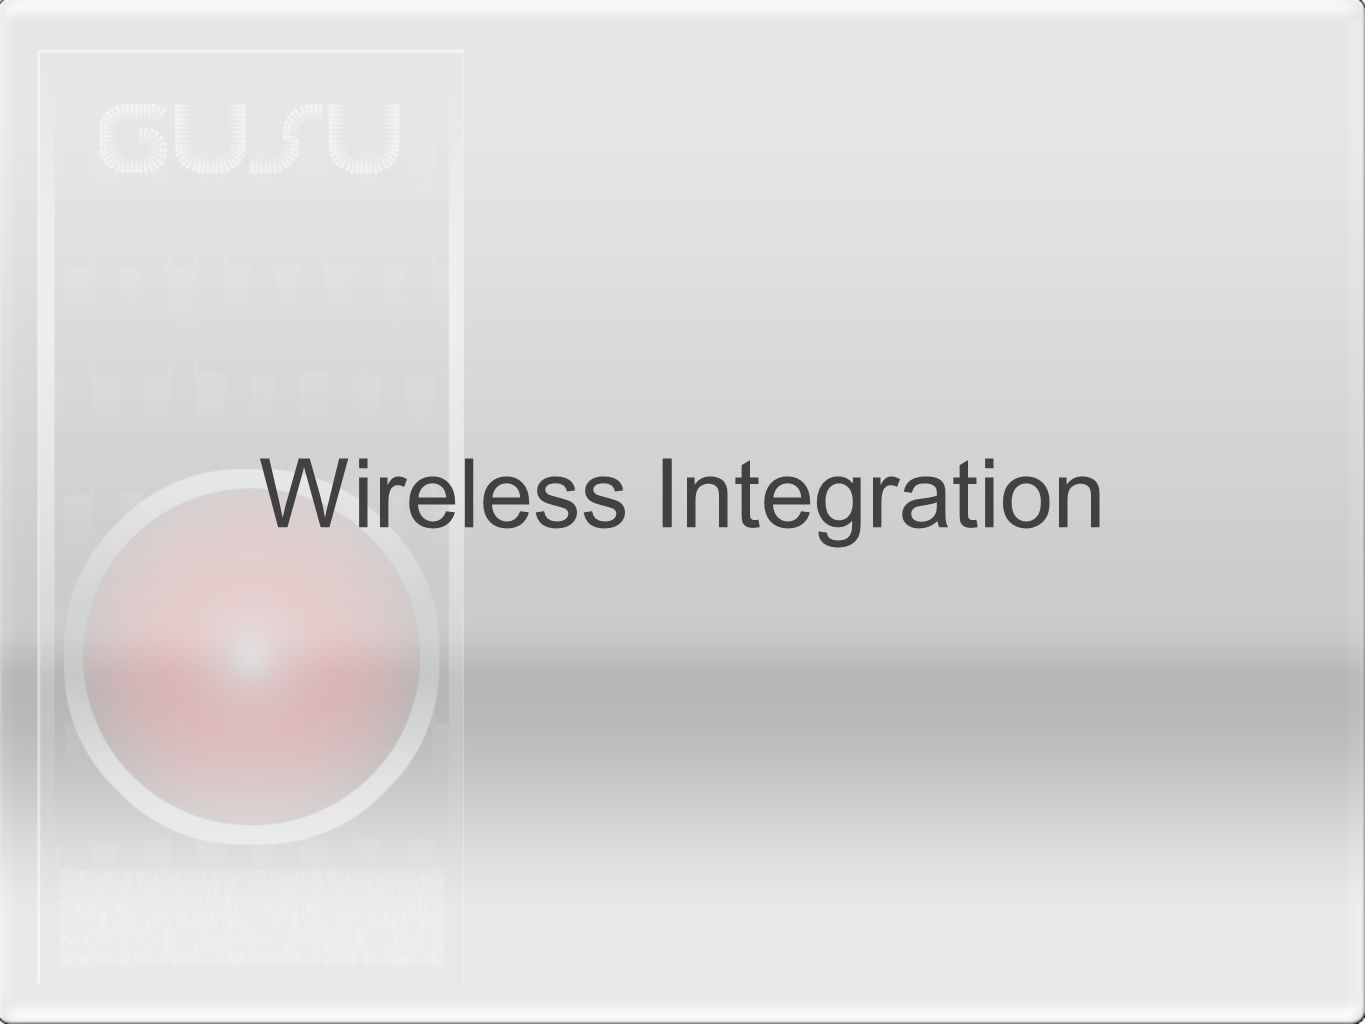 Wireless Integration